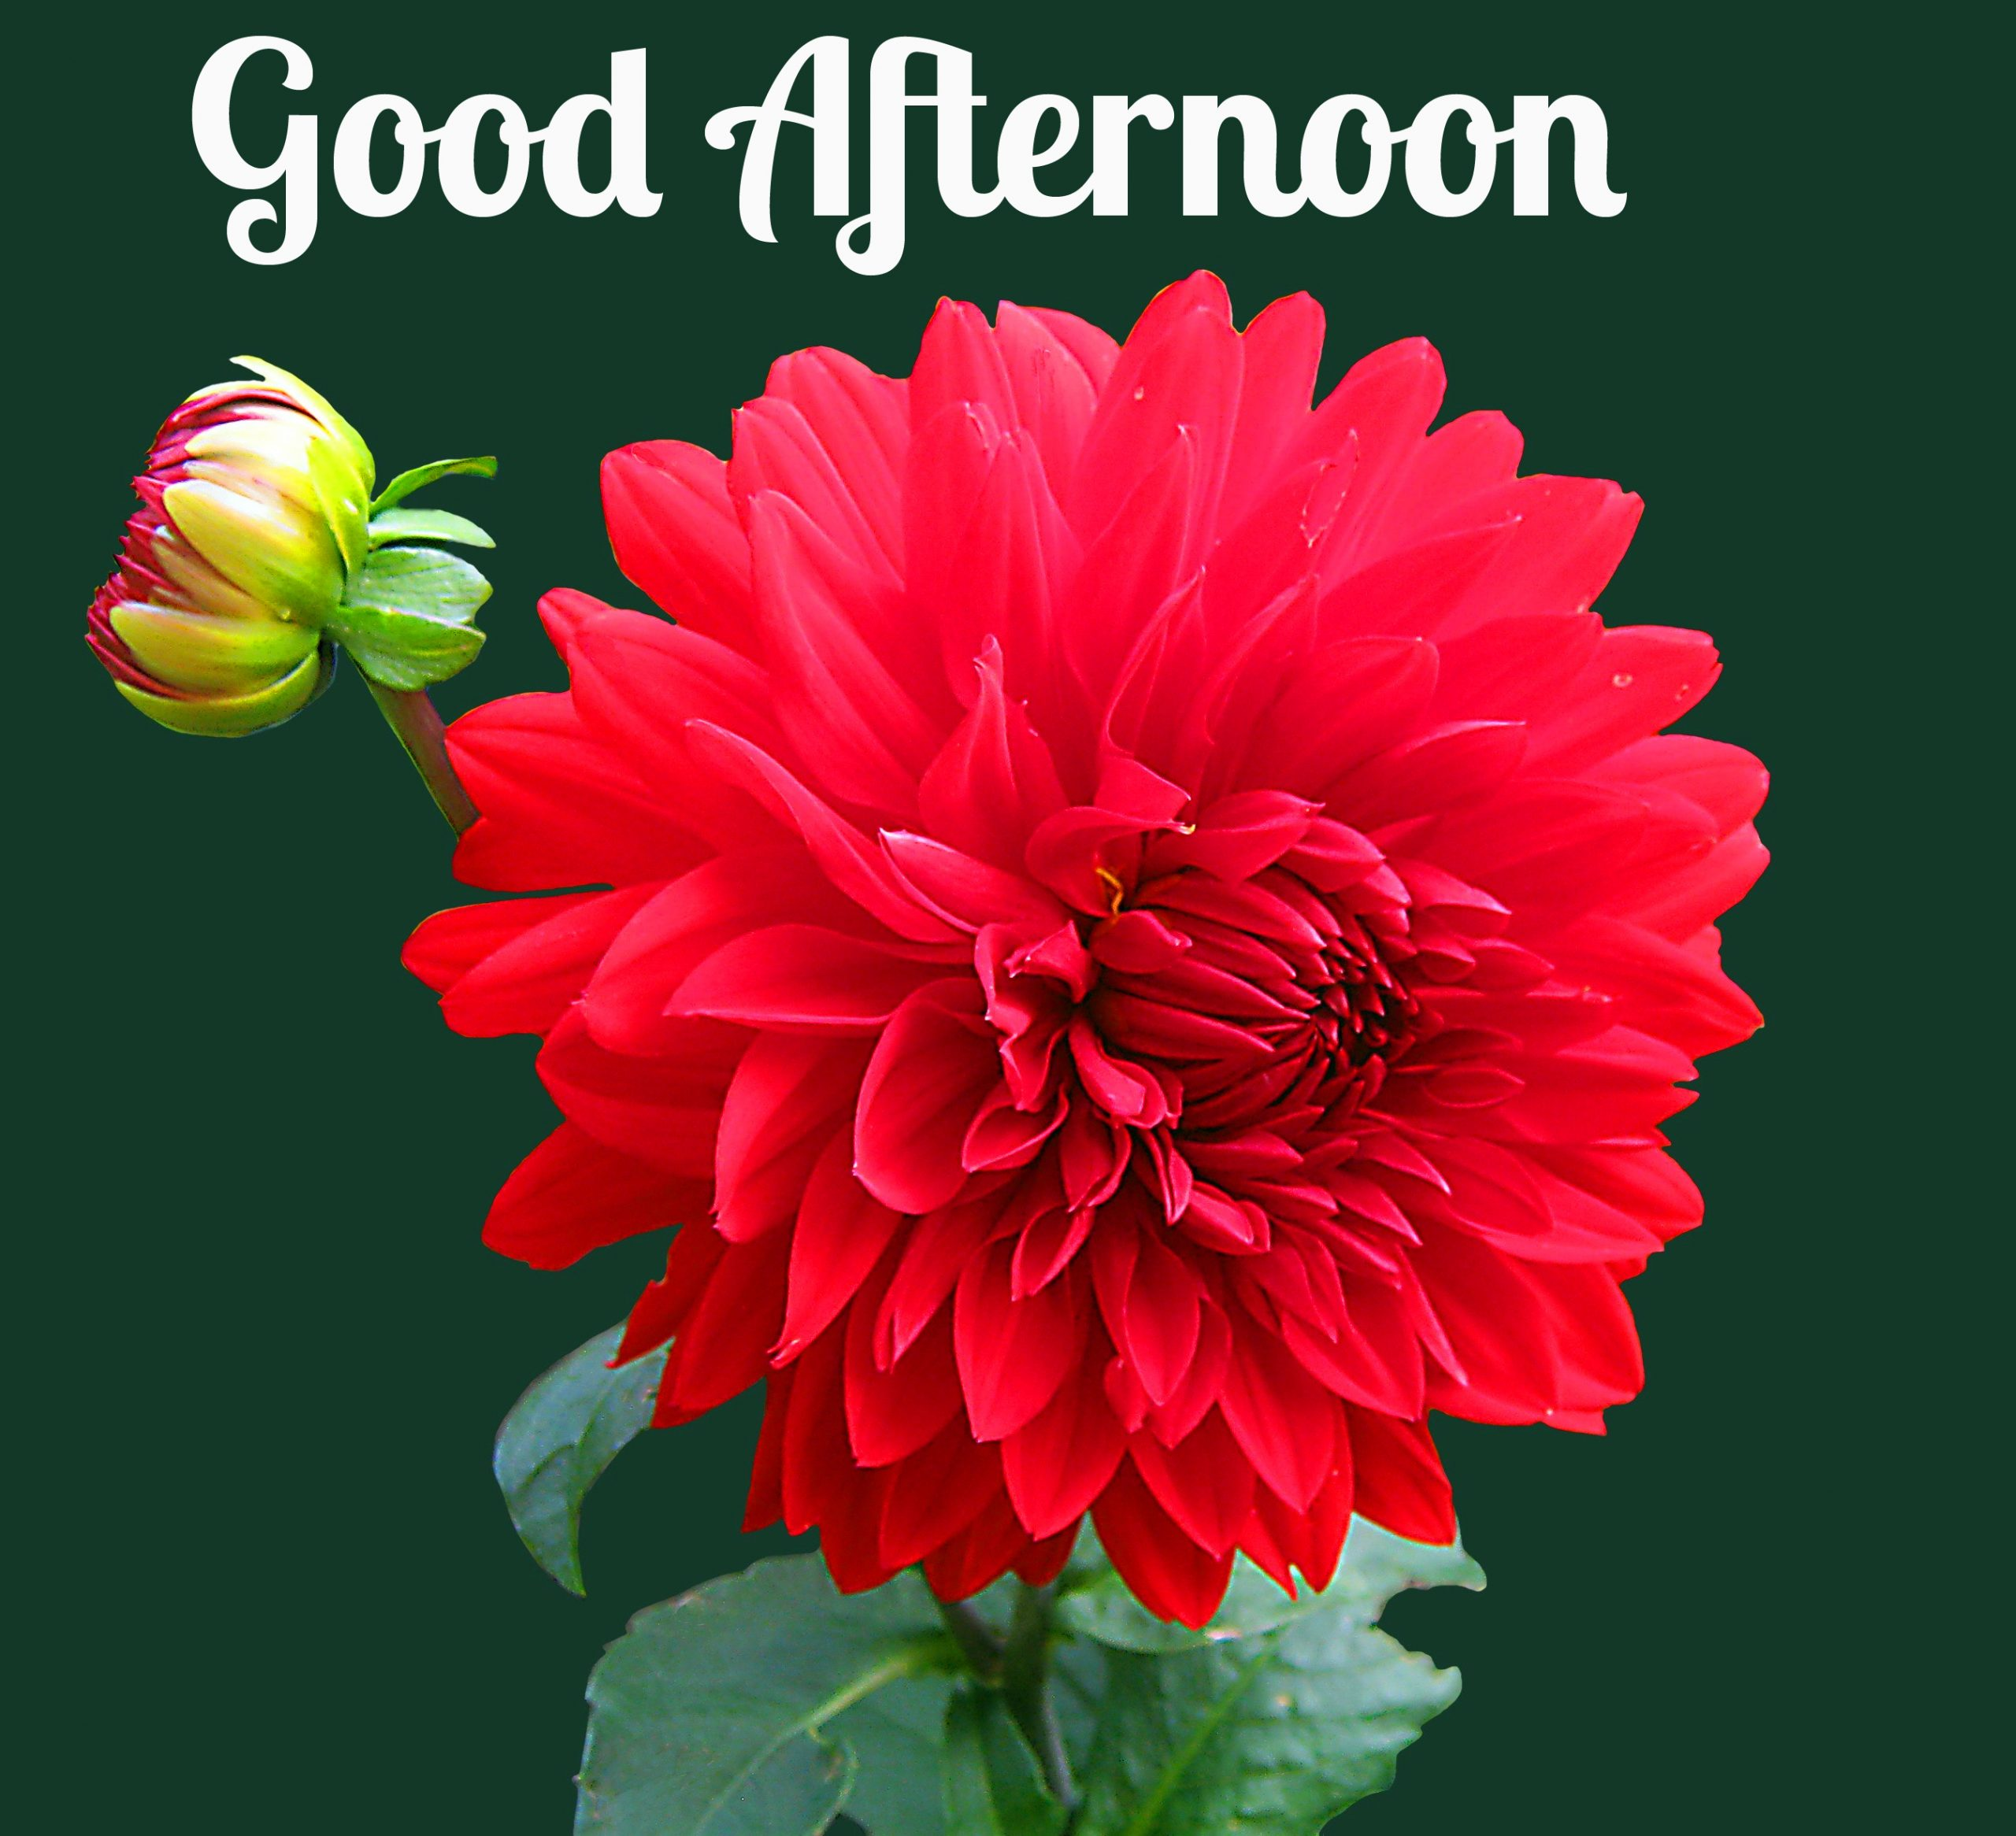 Red Flower Good Afternoon Picture